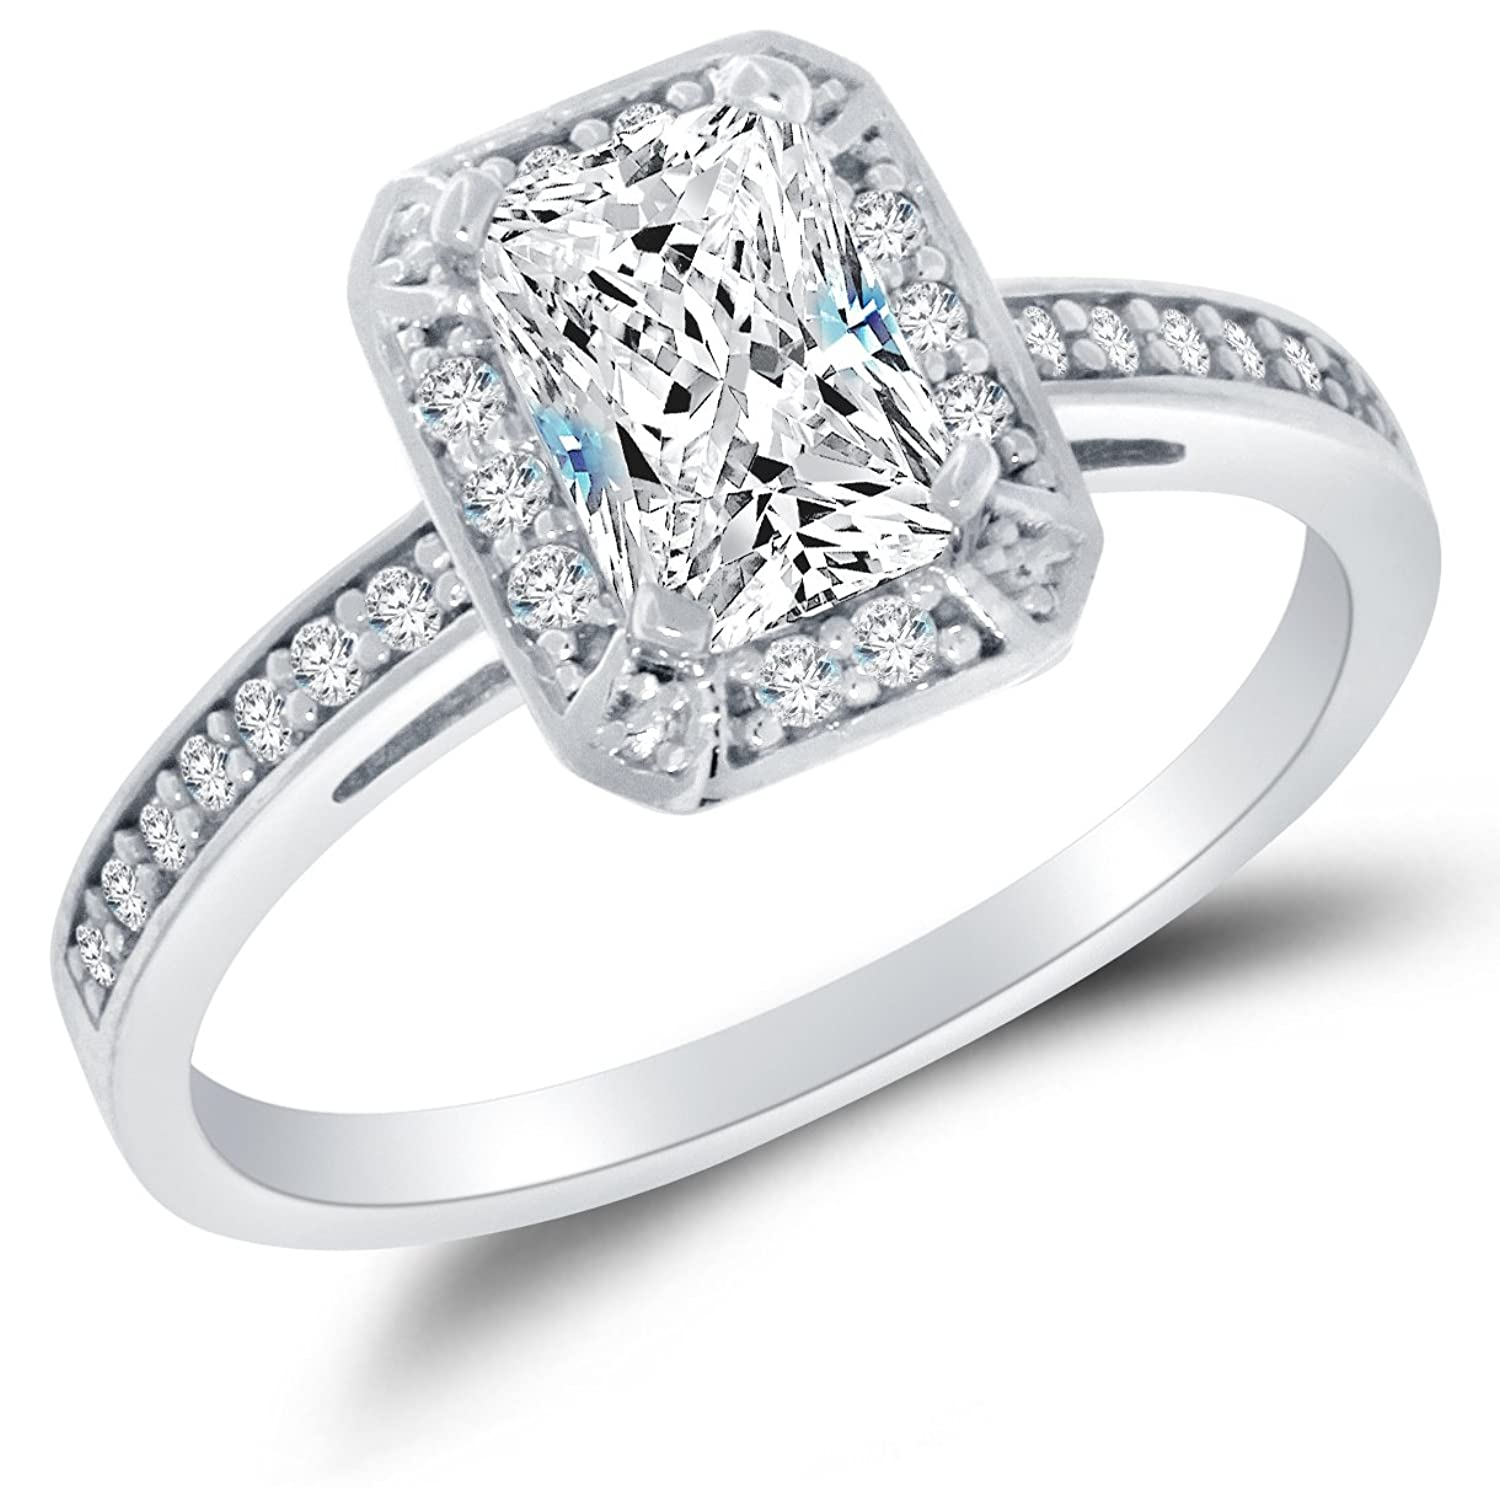 cut gems engagement martin rings emerald best product online and dk maarten jewery stores ring st diamond store at in